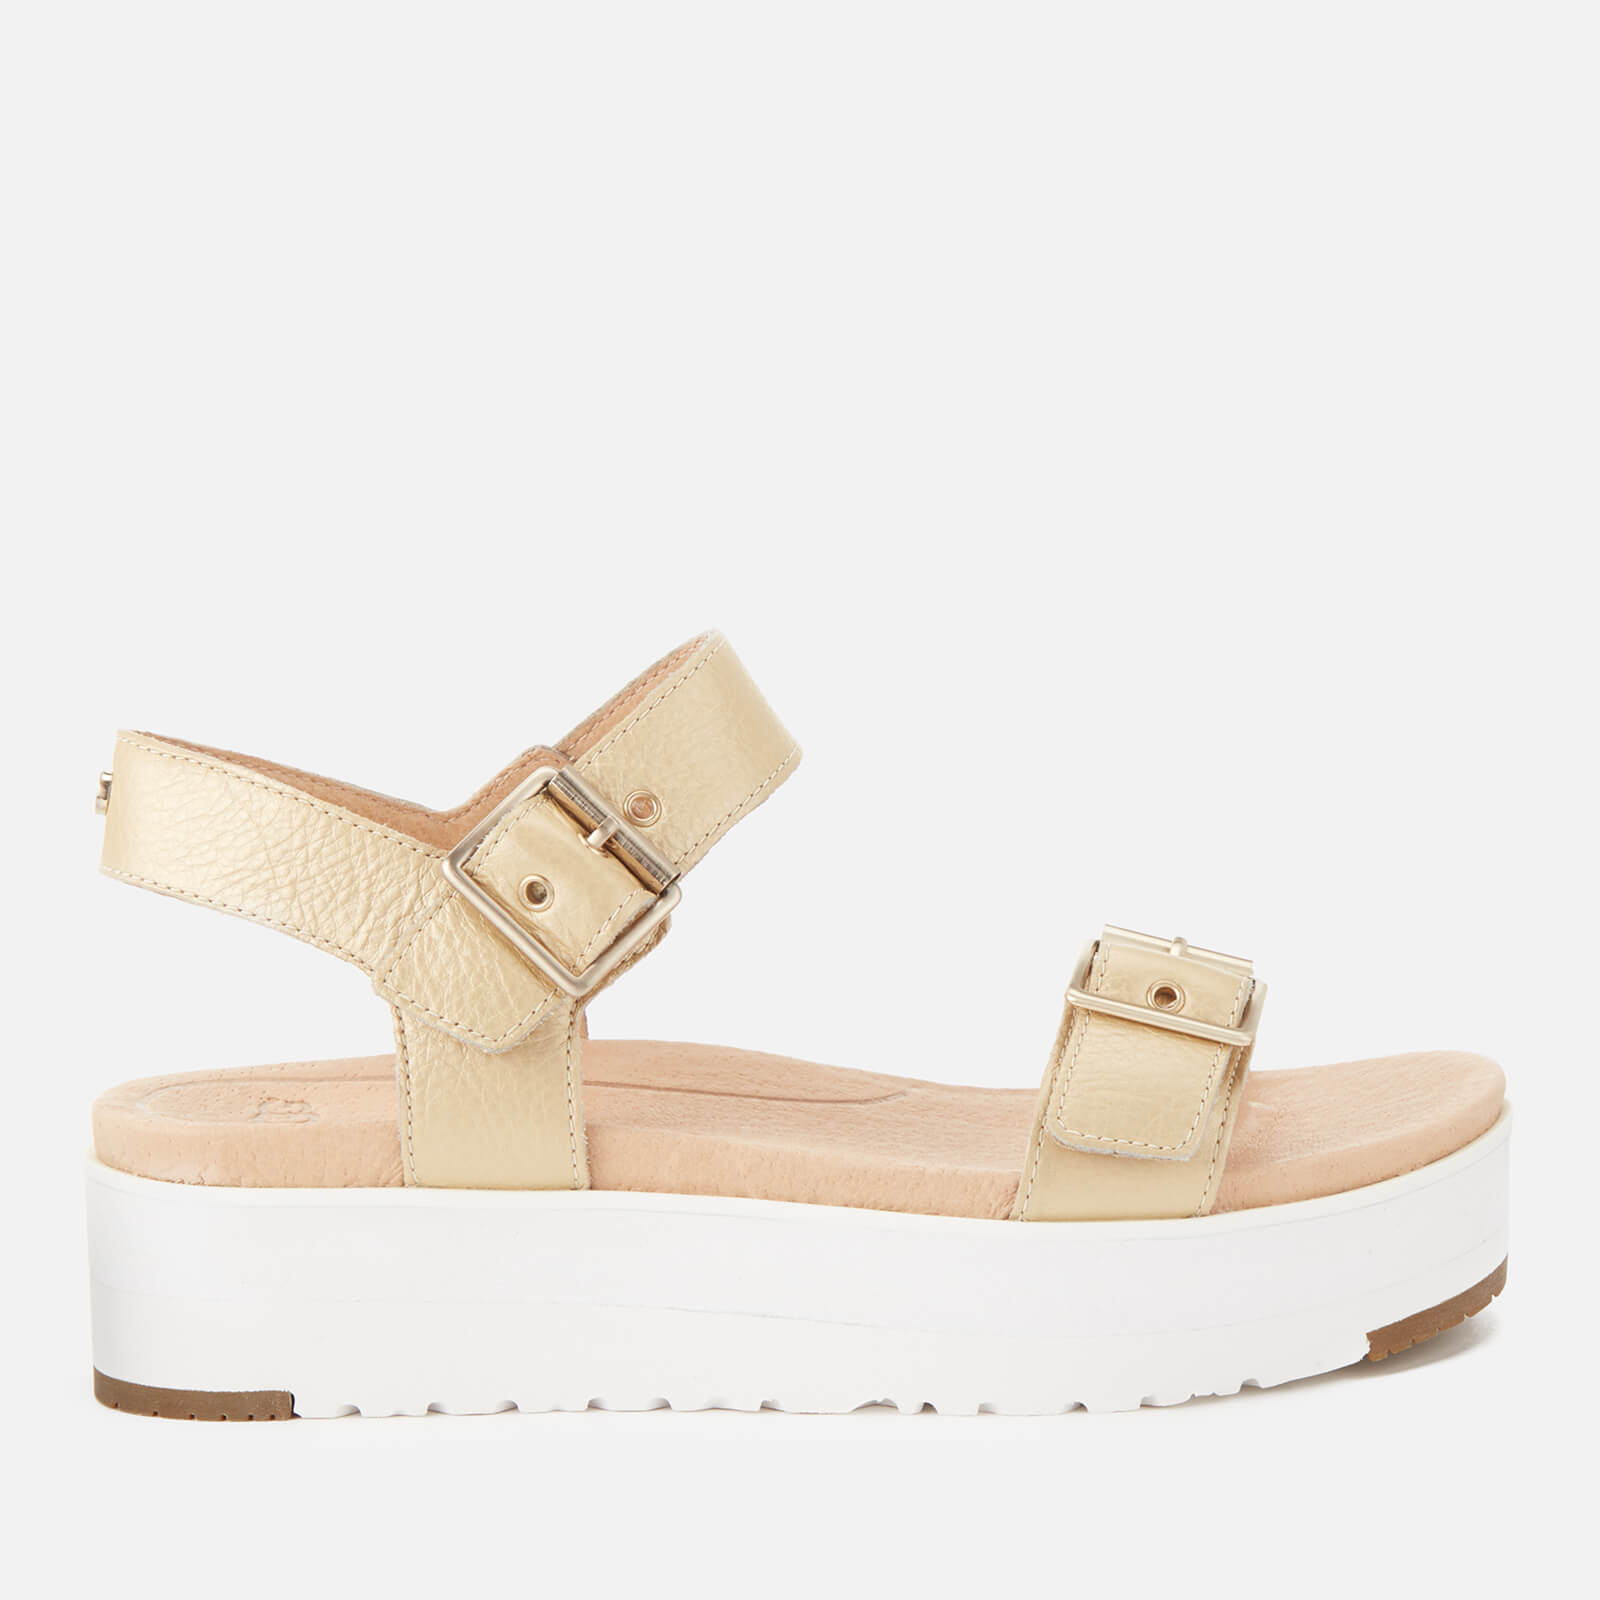 2ce5c060735 UGG Women's Angie Double Strap Flatform Sandals - Gold